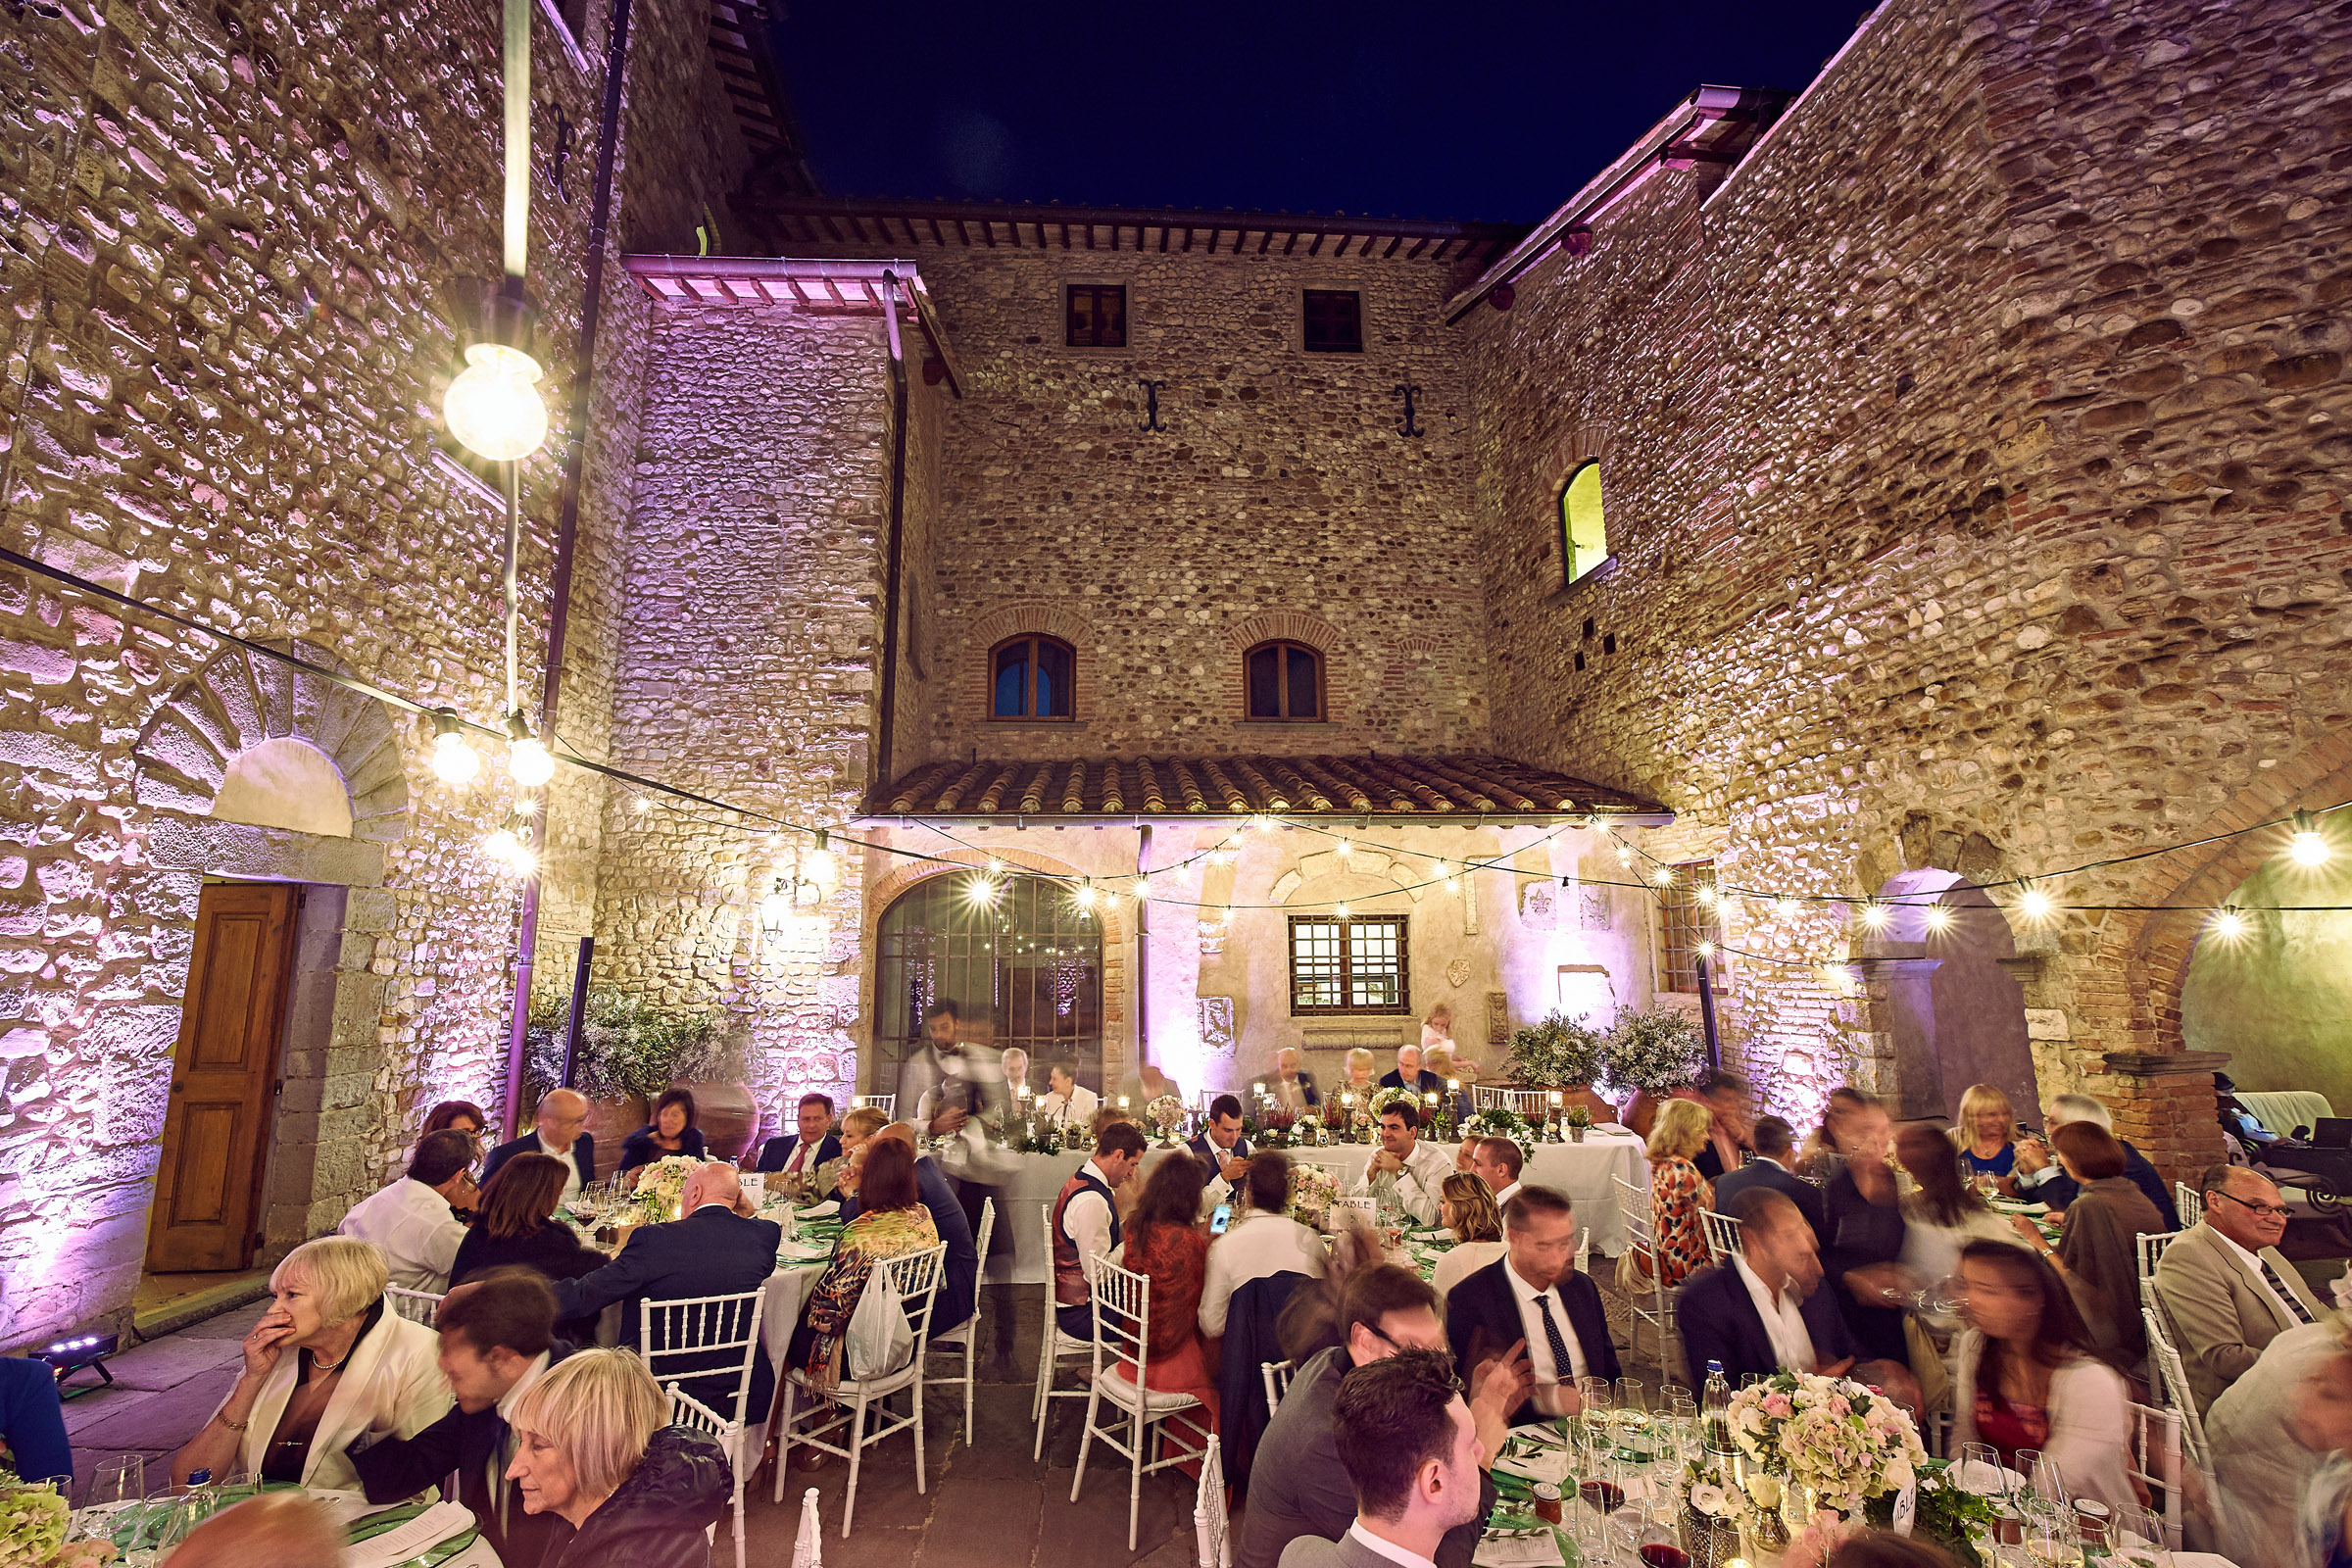 Castle courtyard illuminated with colored spots and string lights